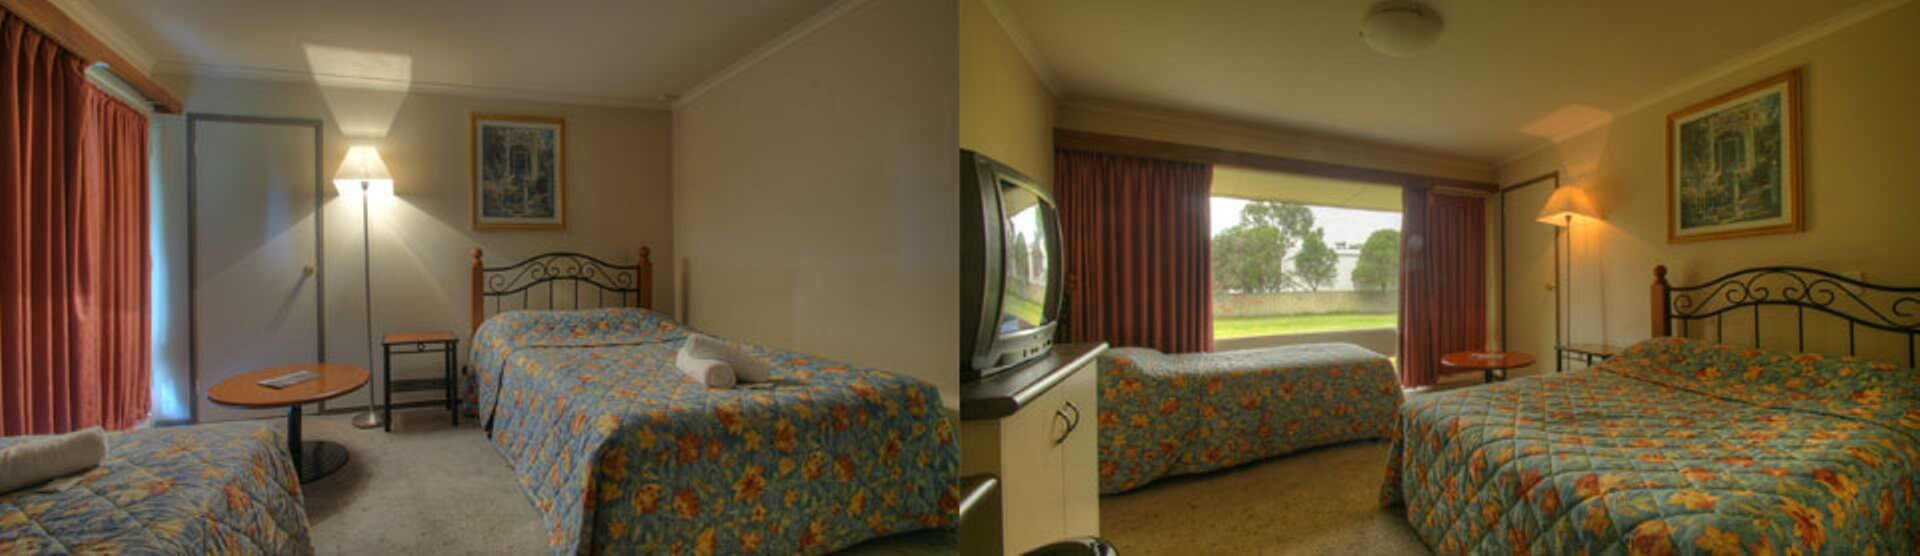 4 Star Accommodation at Budget Prices